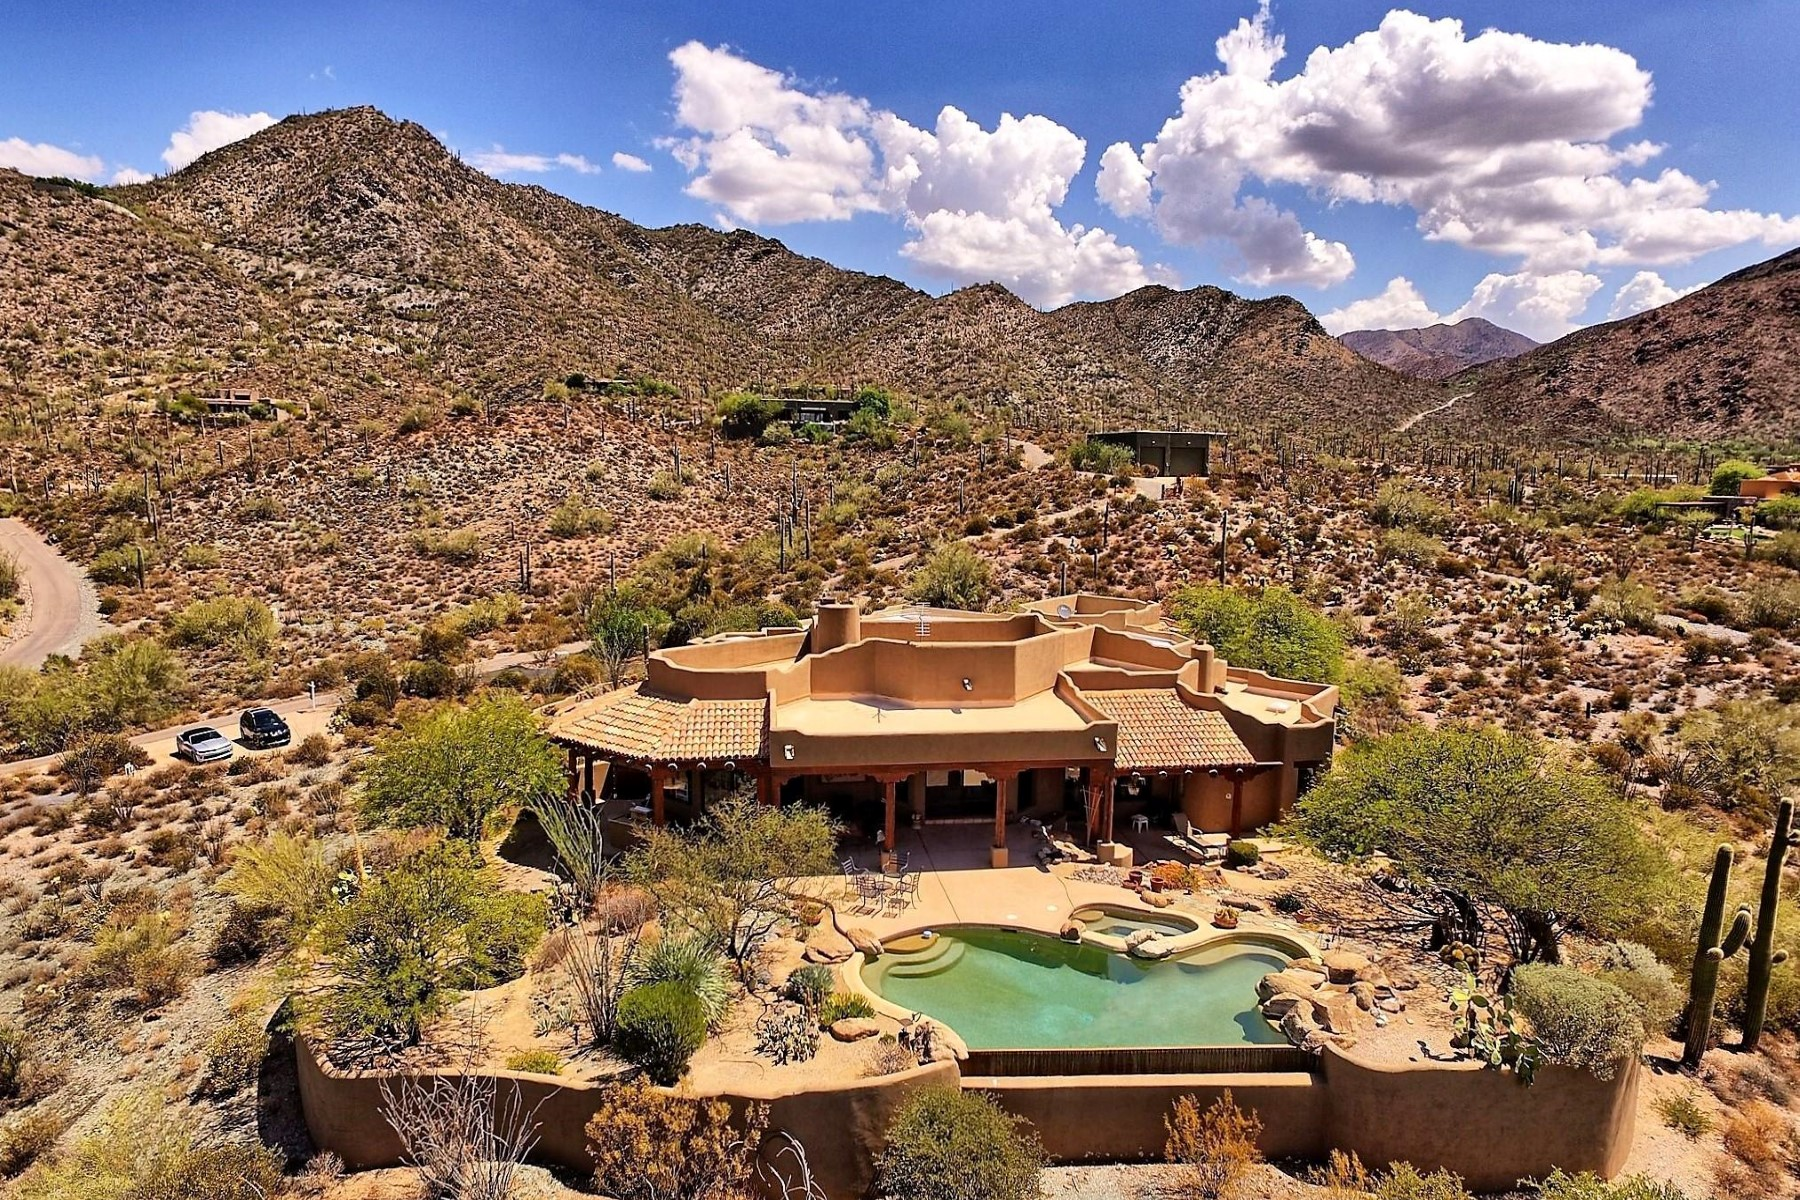 Single Family Home for Sale at Soft Southwestern Santa Fe home with amazing views 43311 N Cottonwood Canyon Rd Cave Creek, Arizona, 85331 United States